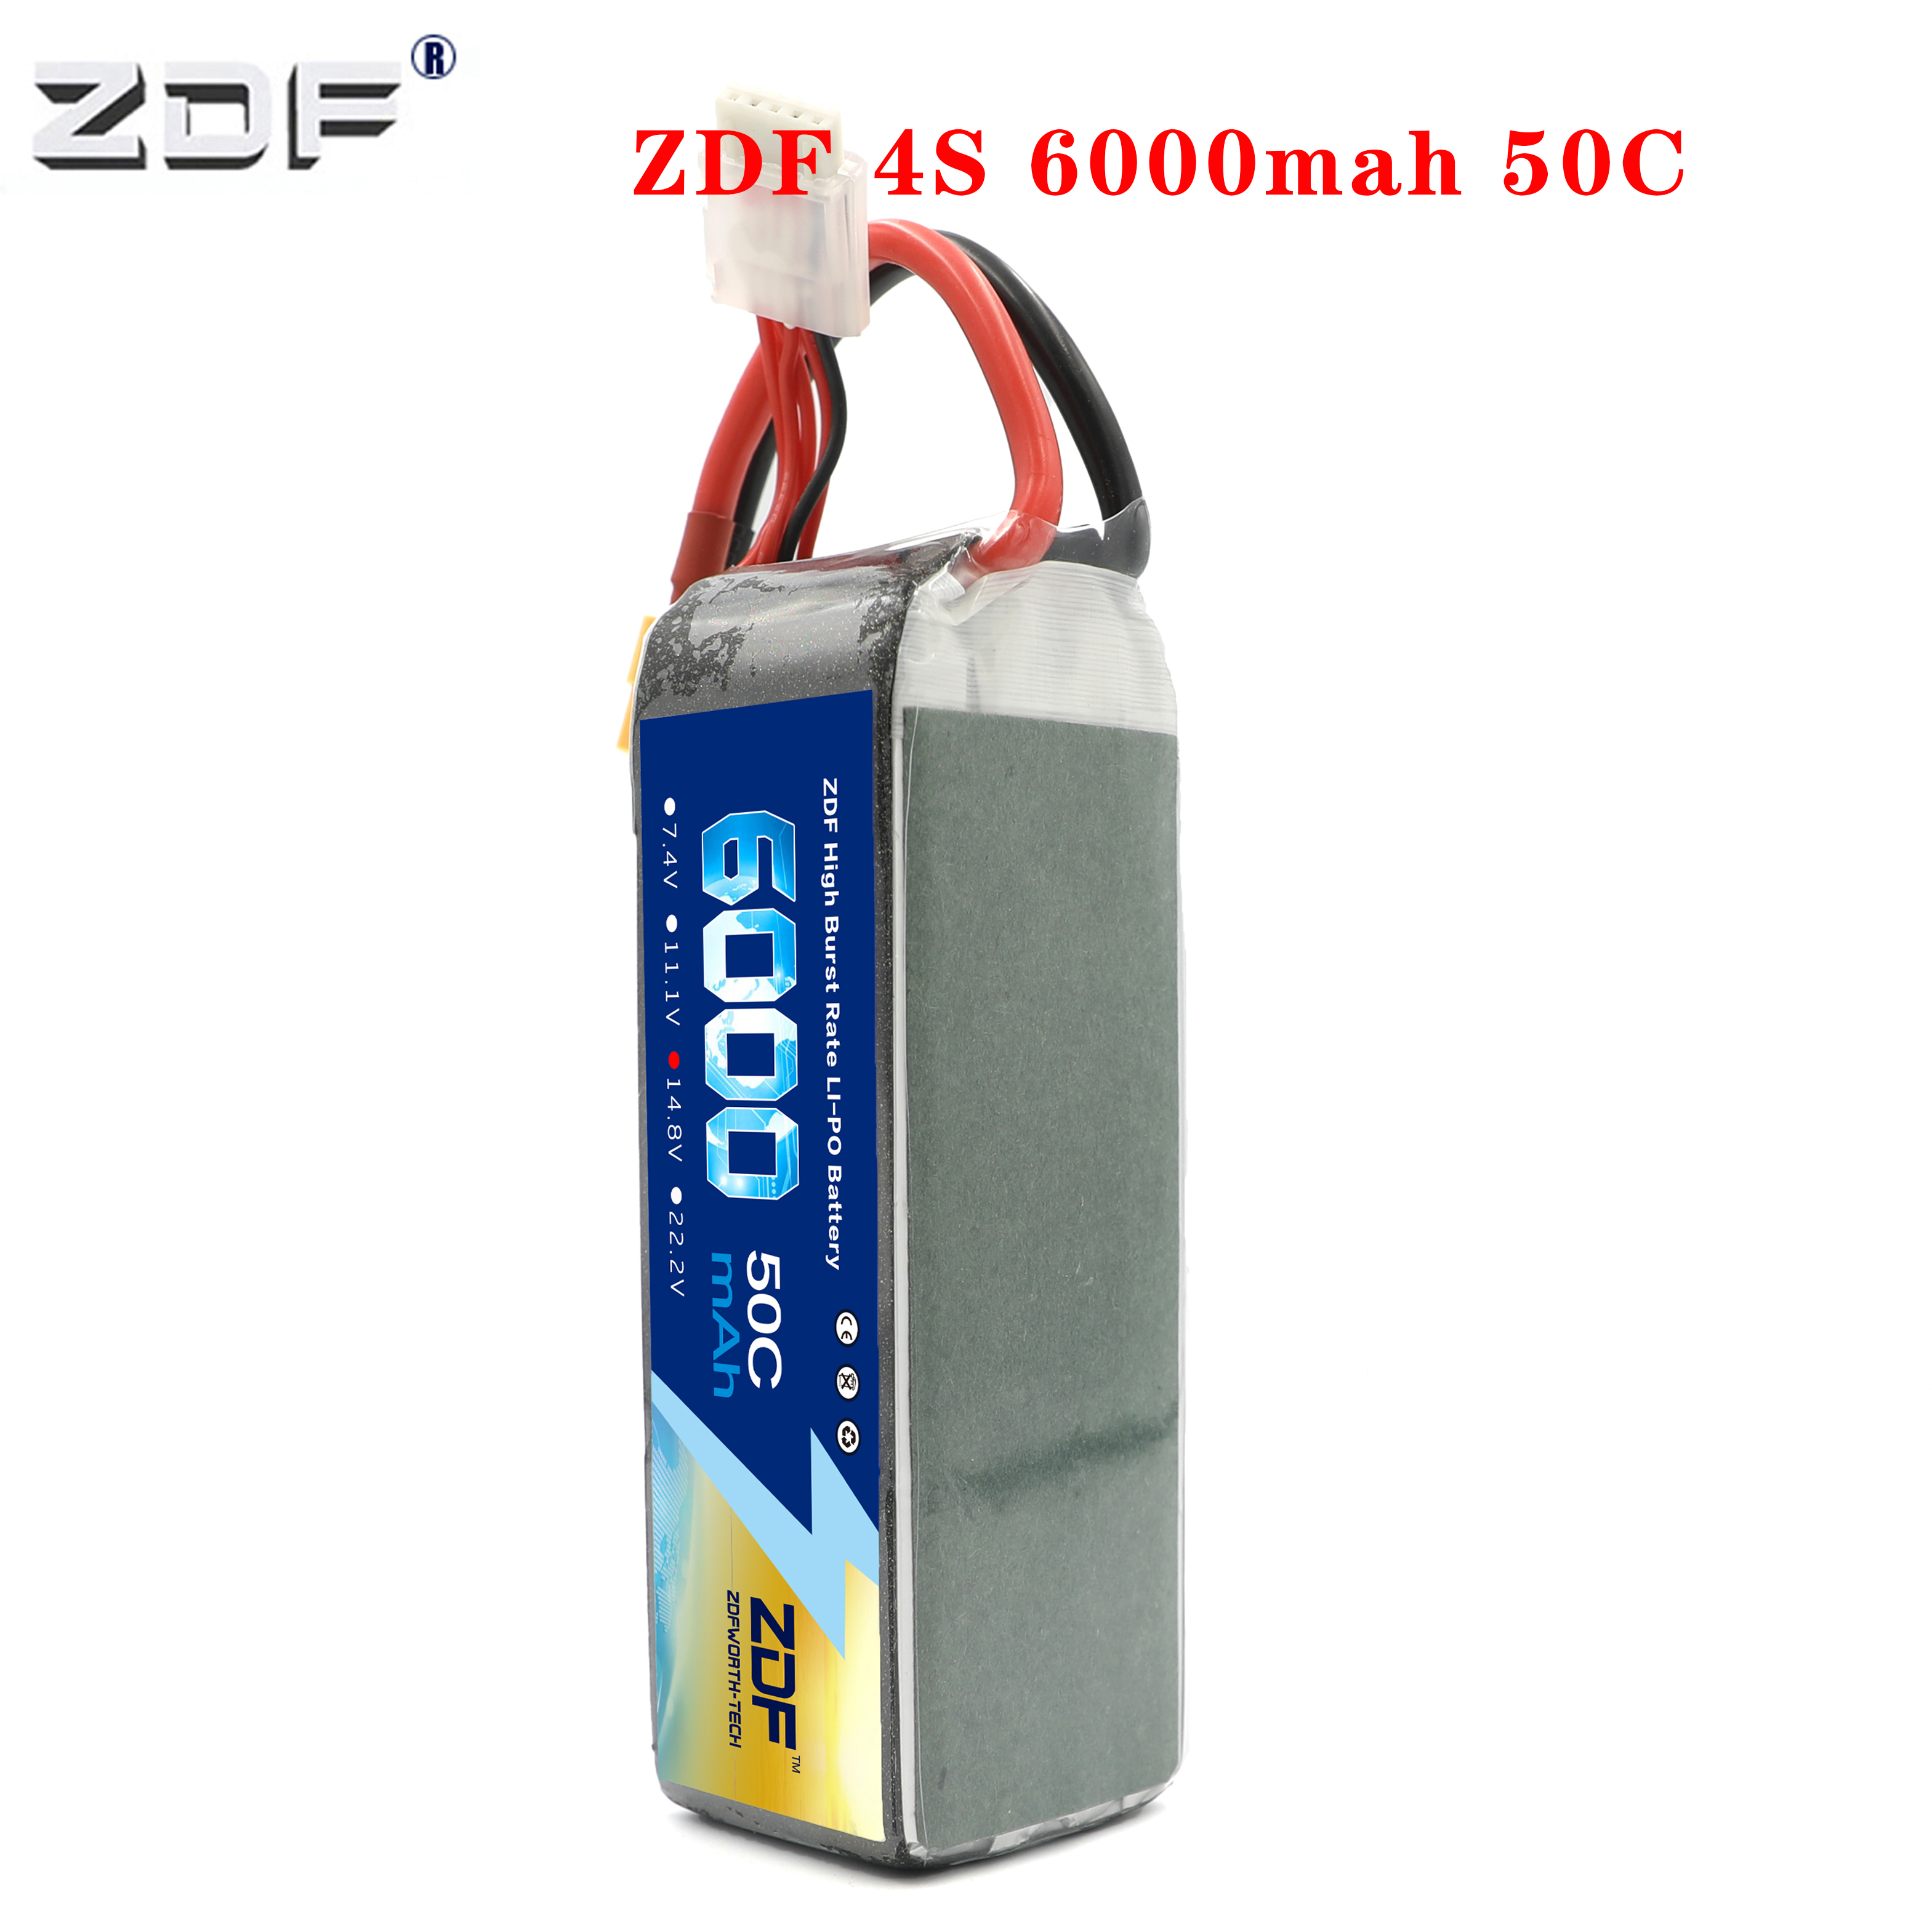 ZDF Power Rechargeable <font><b>6000mah</b></font> 50C <font><b>4S</b></font> 14.8v max100C <font><b>lipo</b></font> <font><b>battery</b></font> for RC racer car boat Trex-450 Fixed-wing Helicopter Quadcopter image